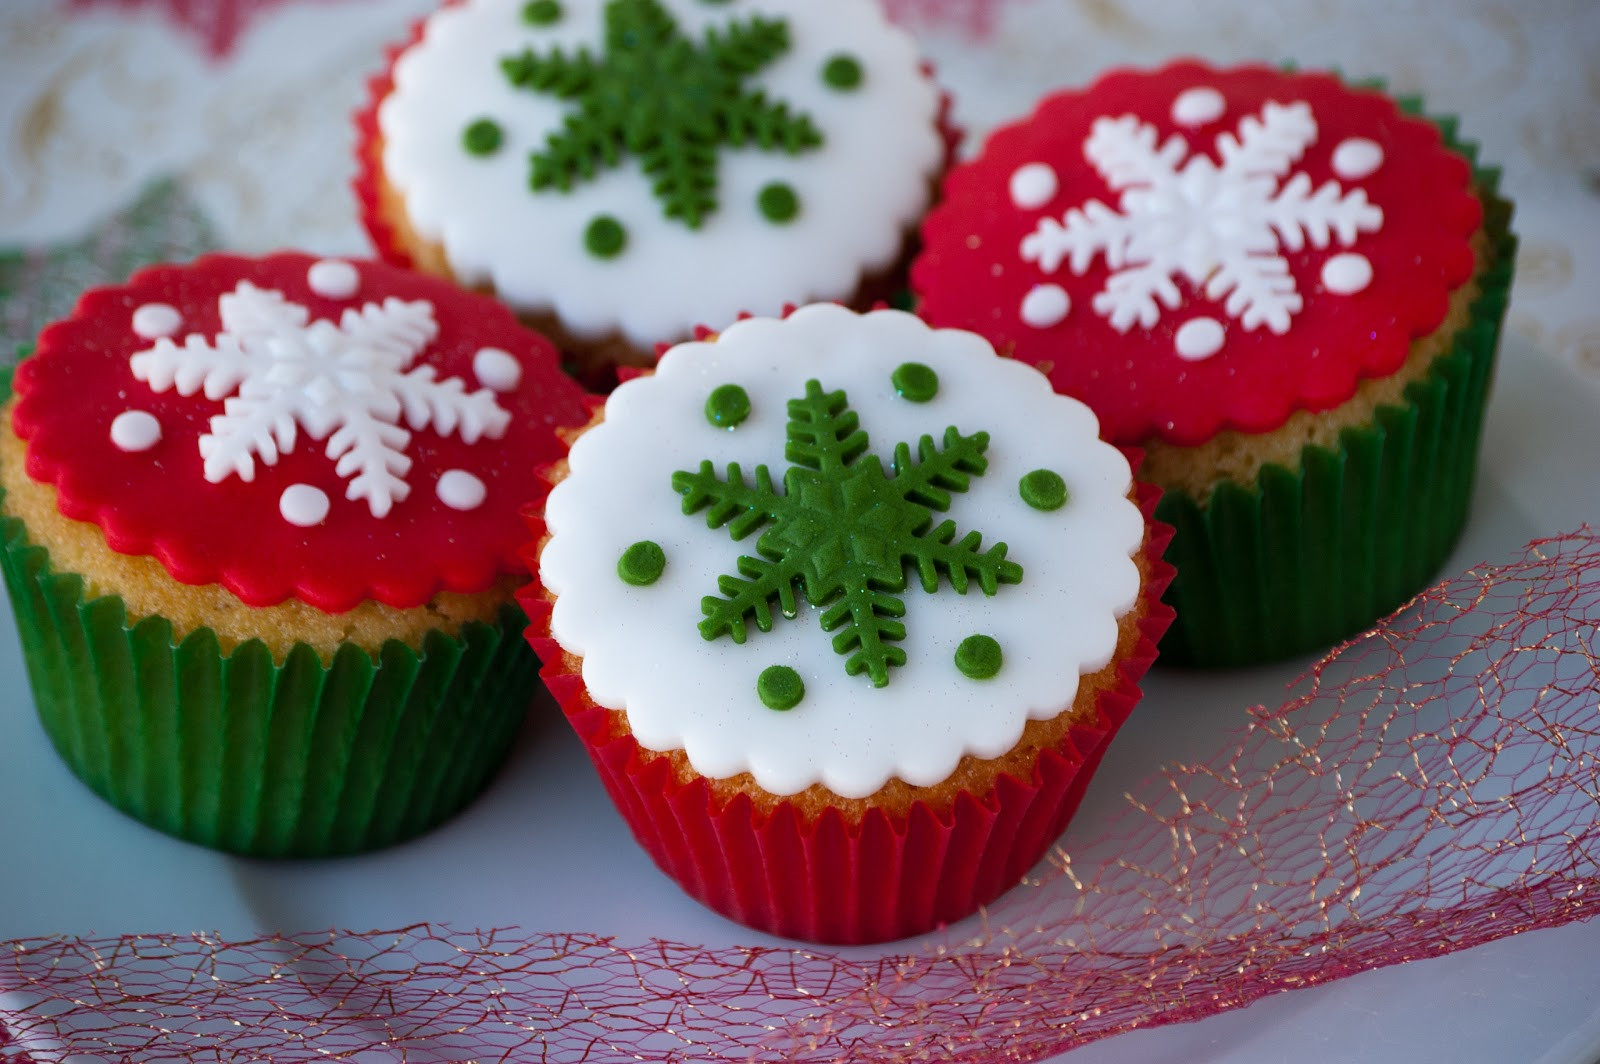 Christmas Cakes And Cupcakes  Cupcakes Are My New Love Christmas Cupcakes